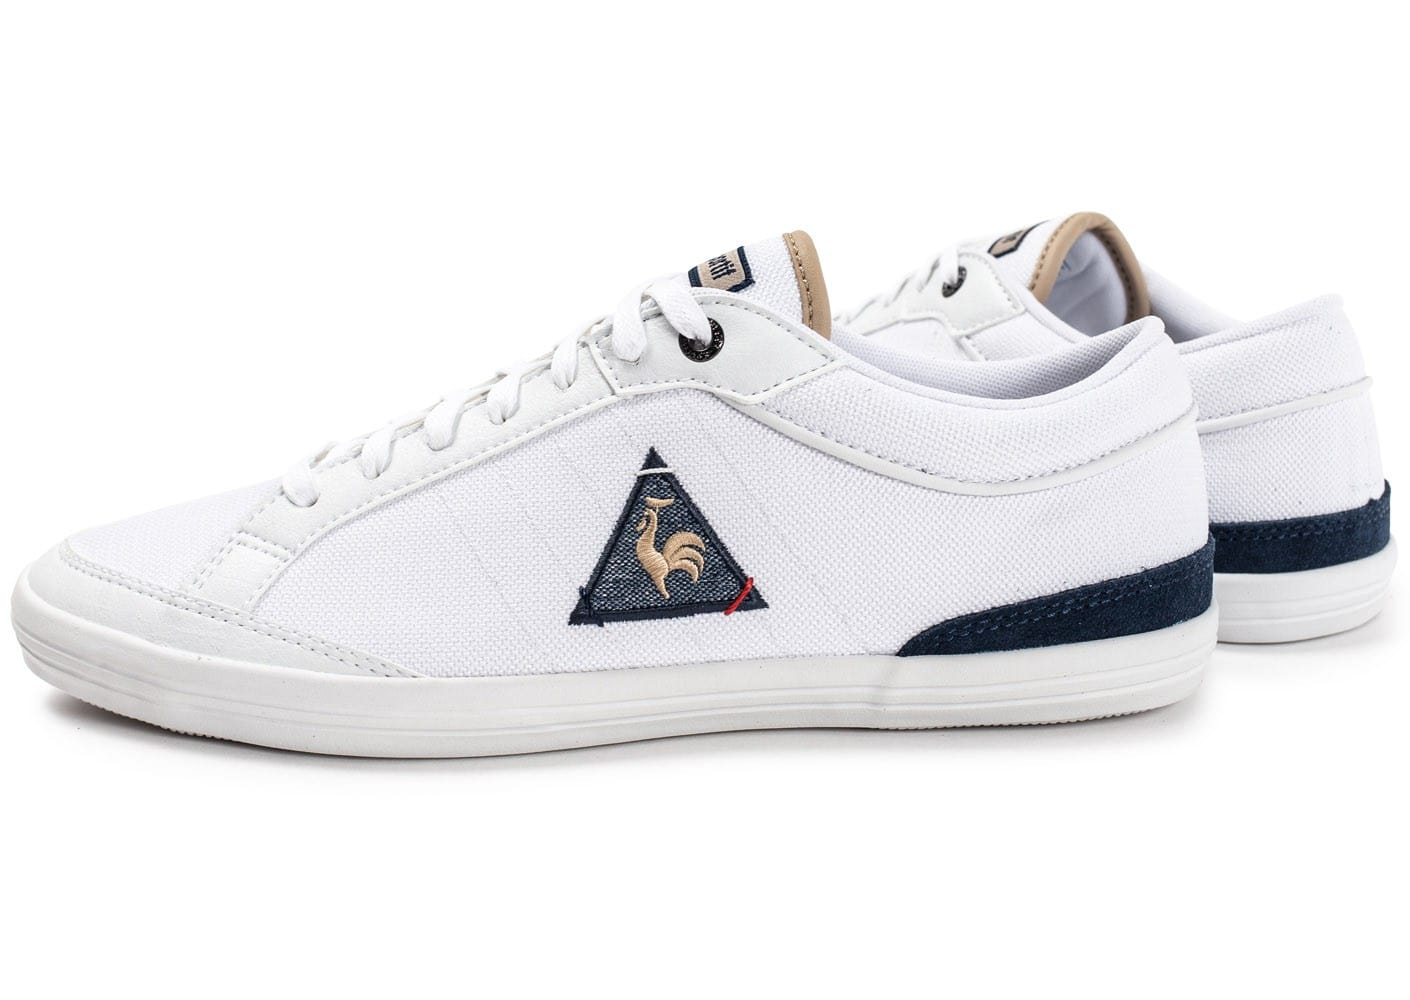 Chaussures Le Coq sportif blanches homme tAqrL